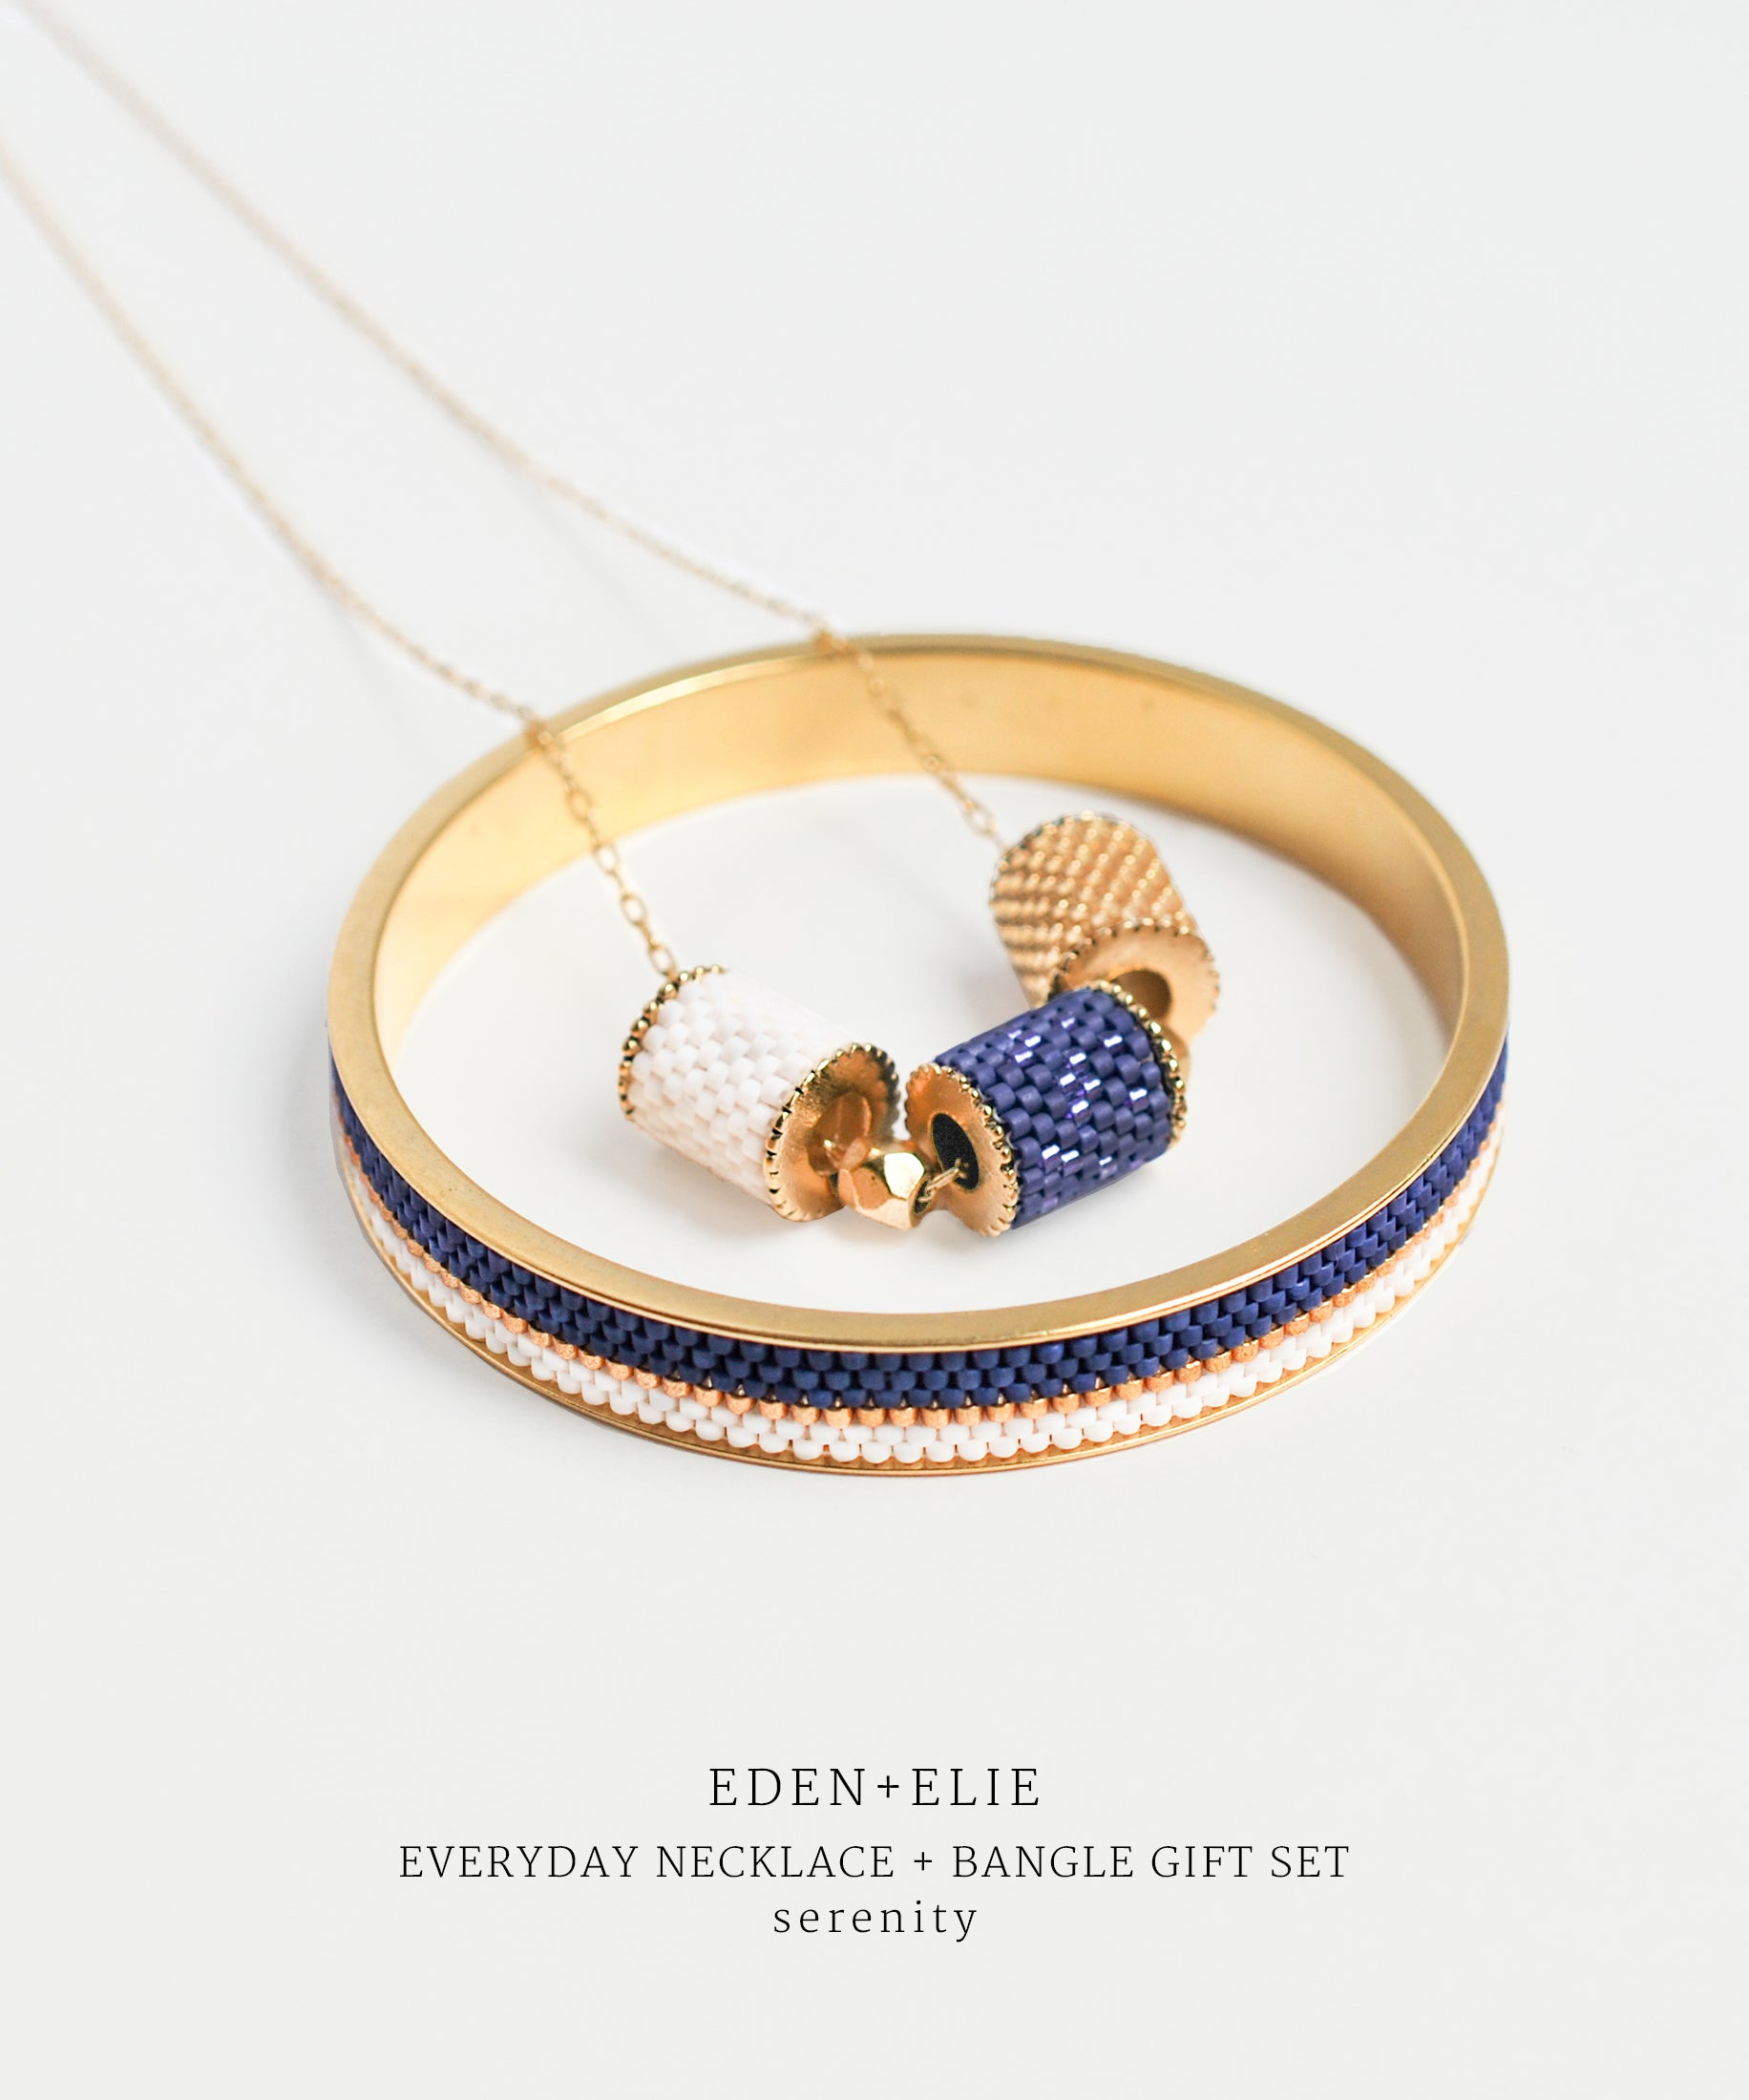 EDEN + ELIE Everyday adjustable length necklace + bangle set - serenity blue